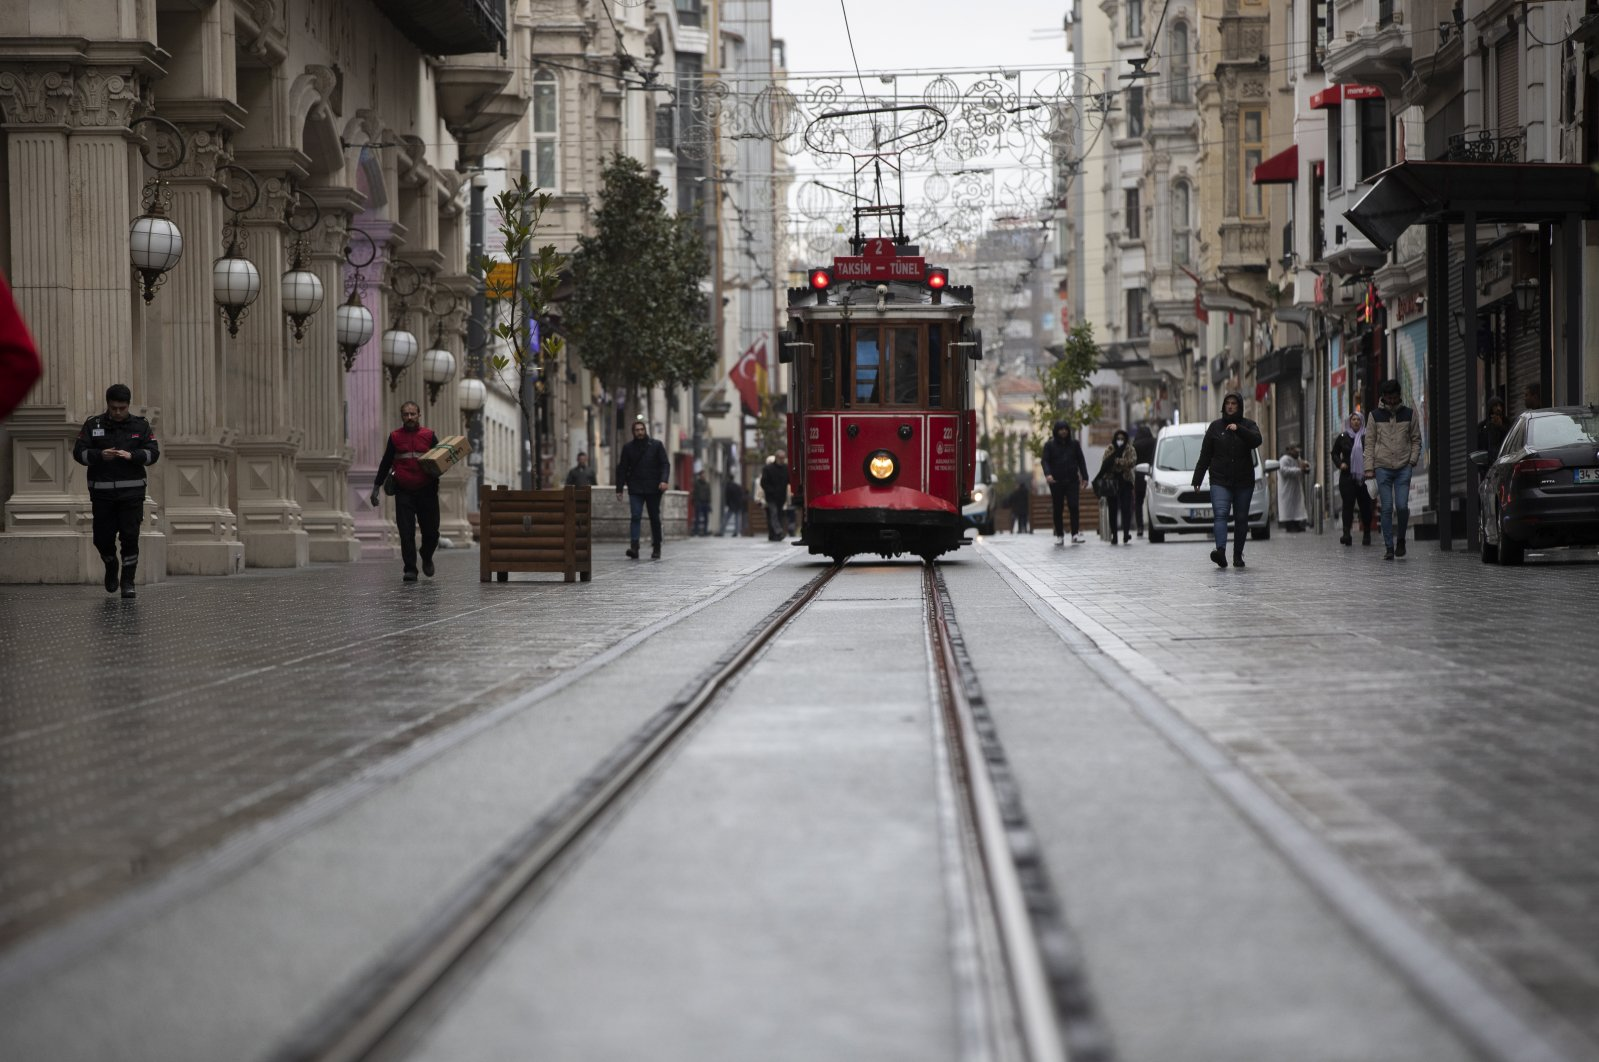 People walk along a nearly empty İstiklal Avenue as the nation tries to contain the coronavirus, Istanbul, Turkey, Tuesday, March 24, 2020. (EPA Photo)